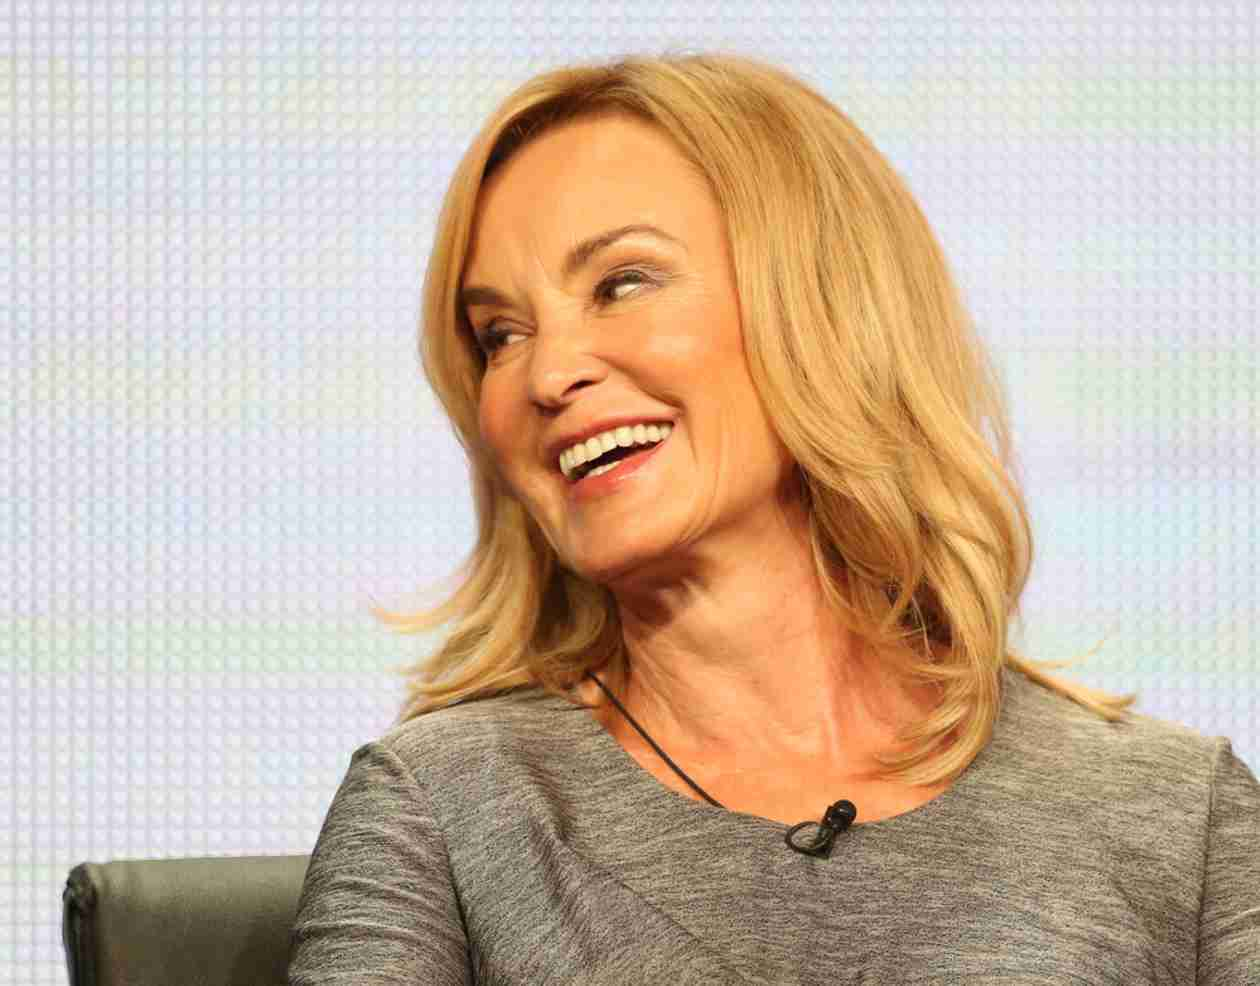 American Horror Story Season 4: Jessica Lange to Play Marlene Dietrich Type